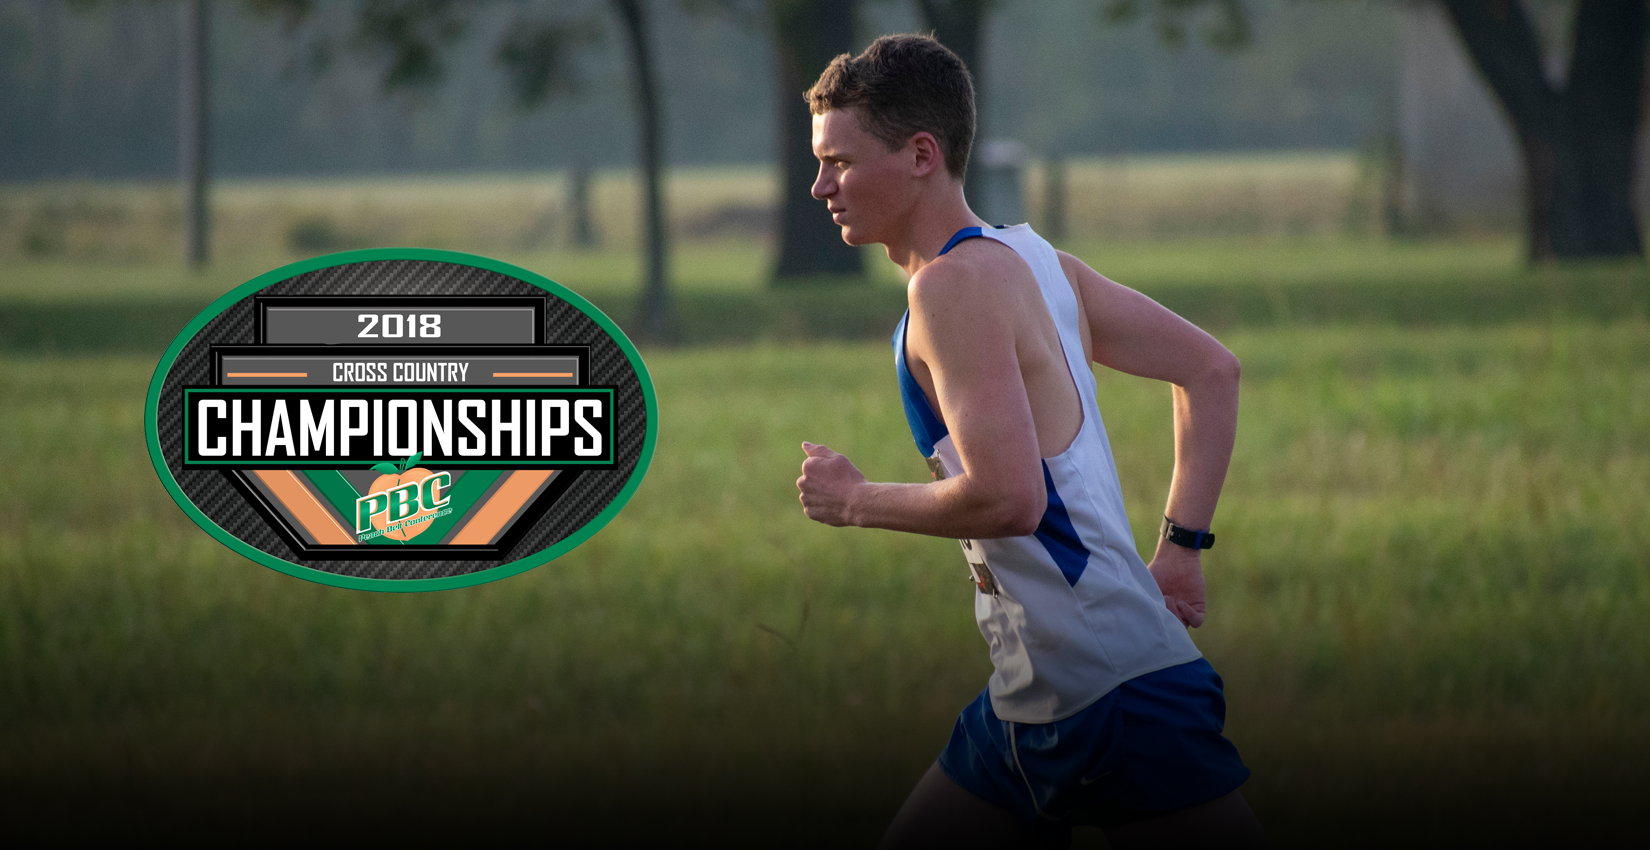 GC Men's Cross Country Prepares for PBC Championships Saturday